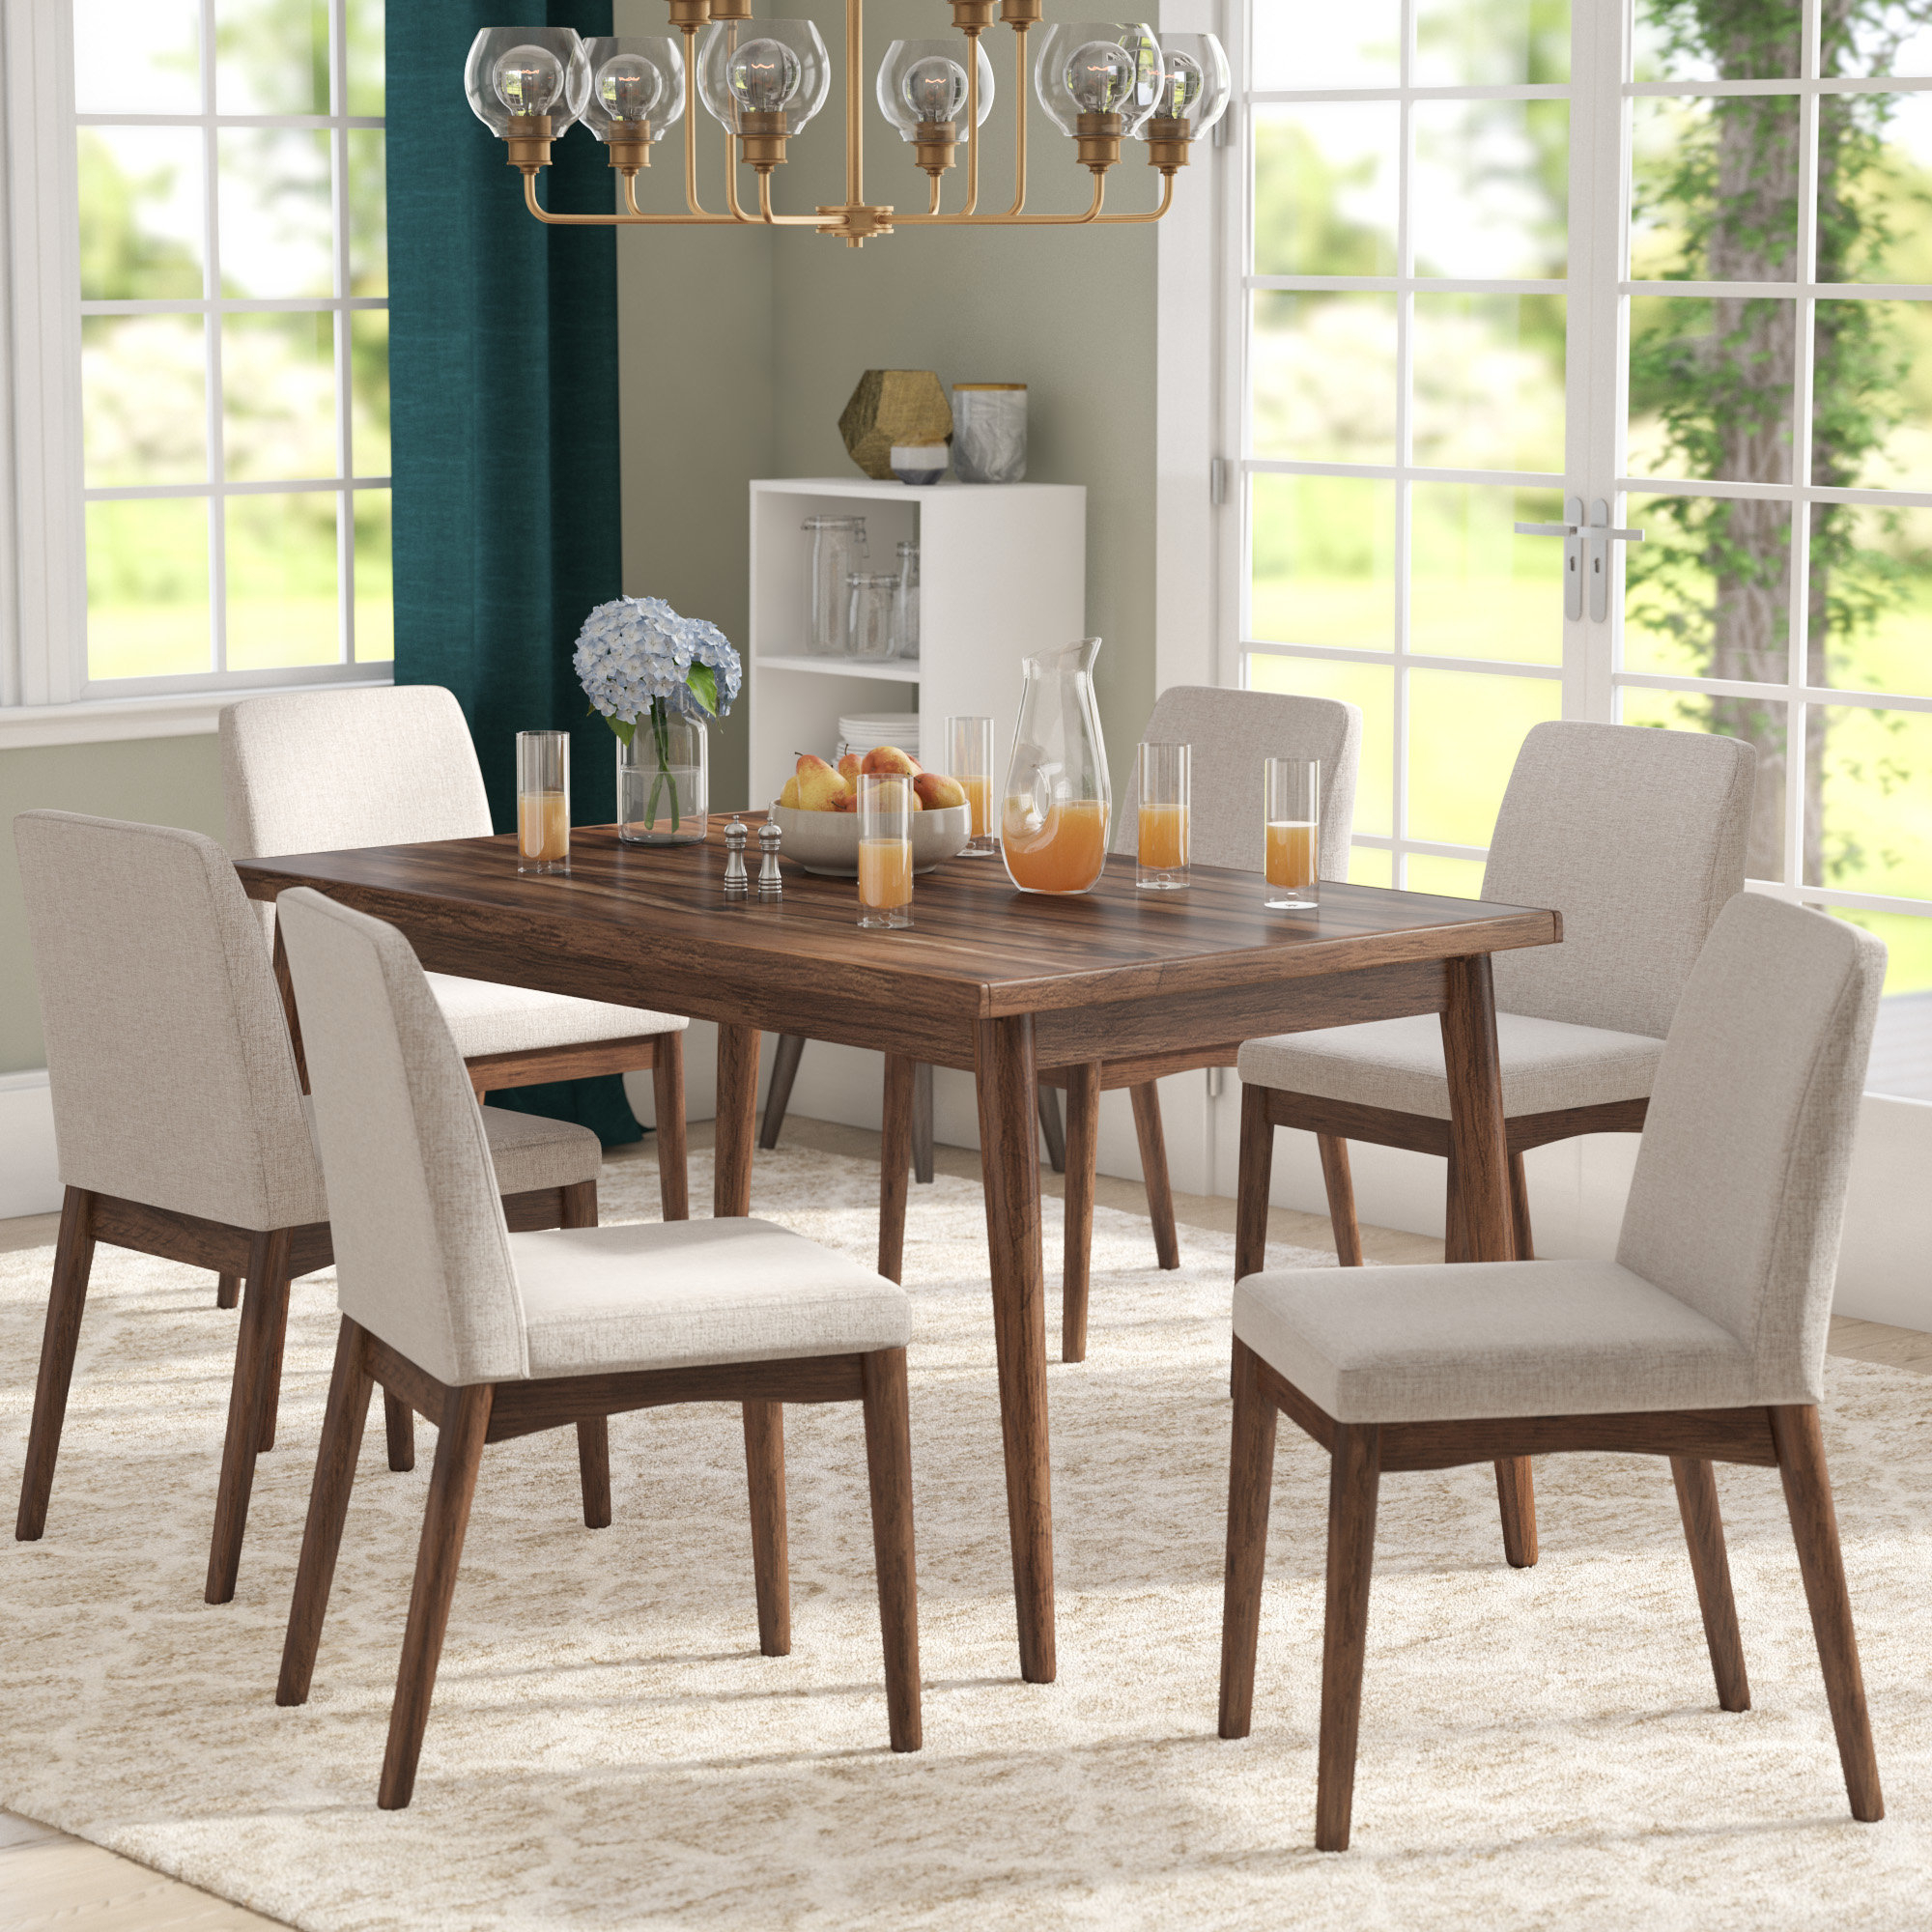 Lydia 7 Piece Dining Set Regarding Most Recent Tavarez 5 Piece Dining Sets (Image 12 of 20)